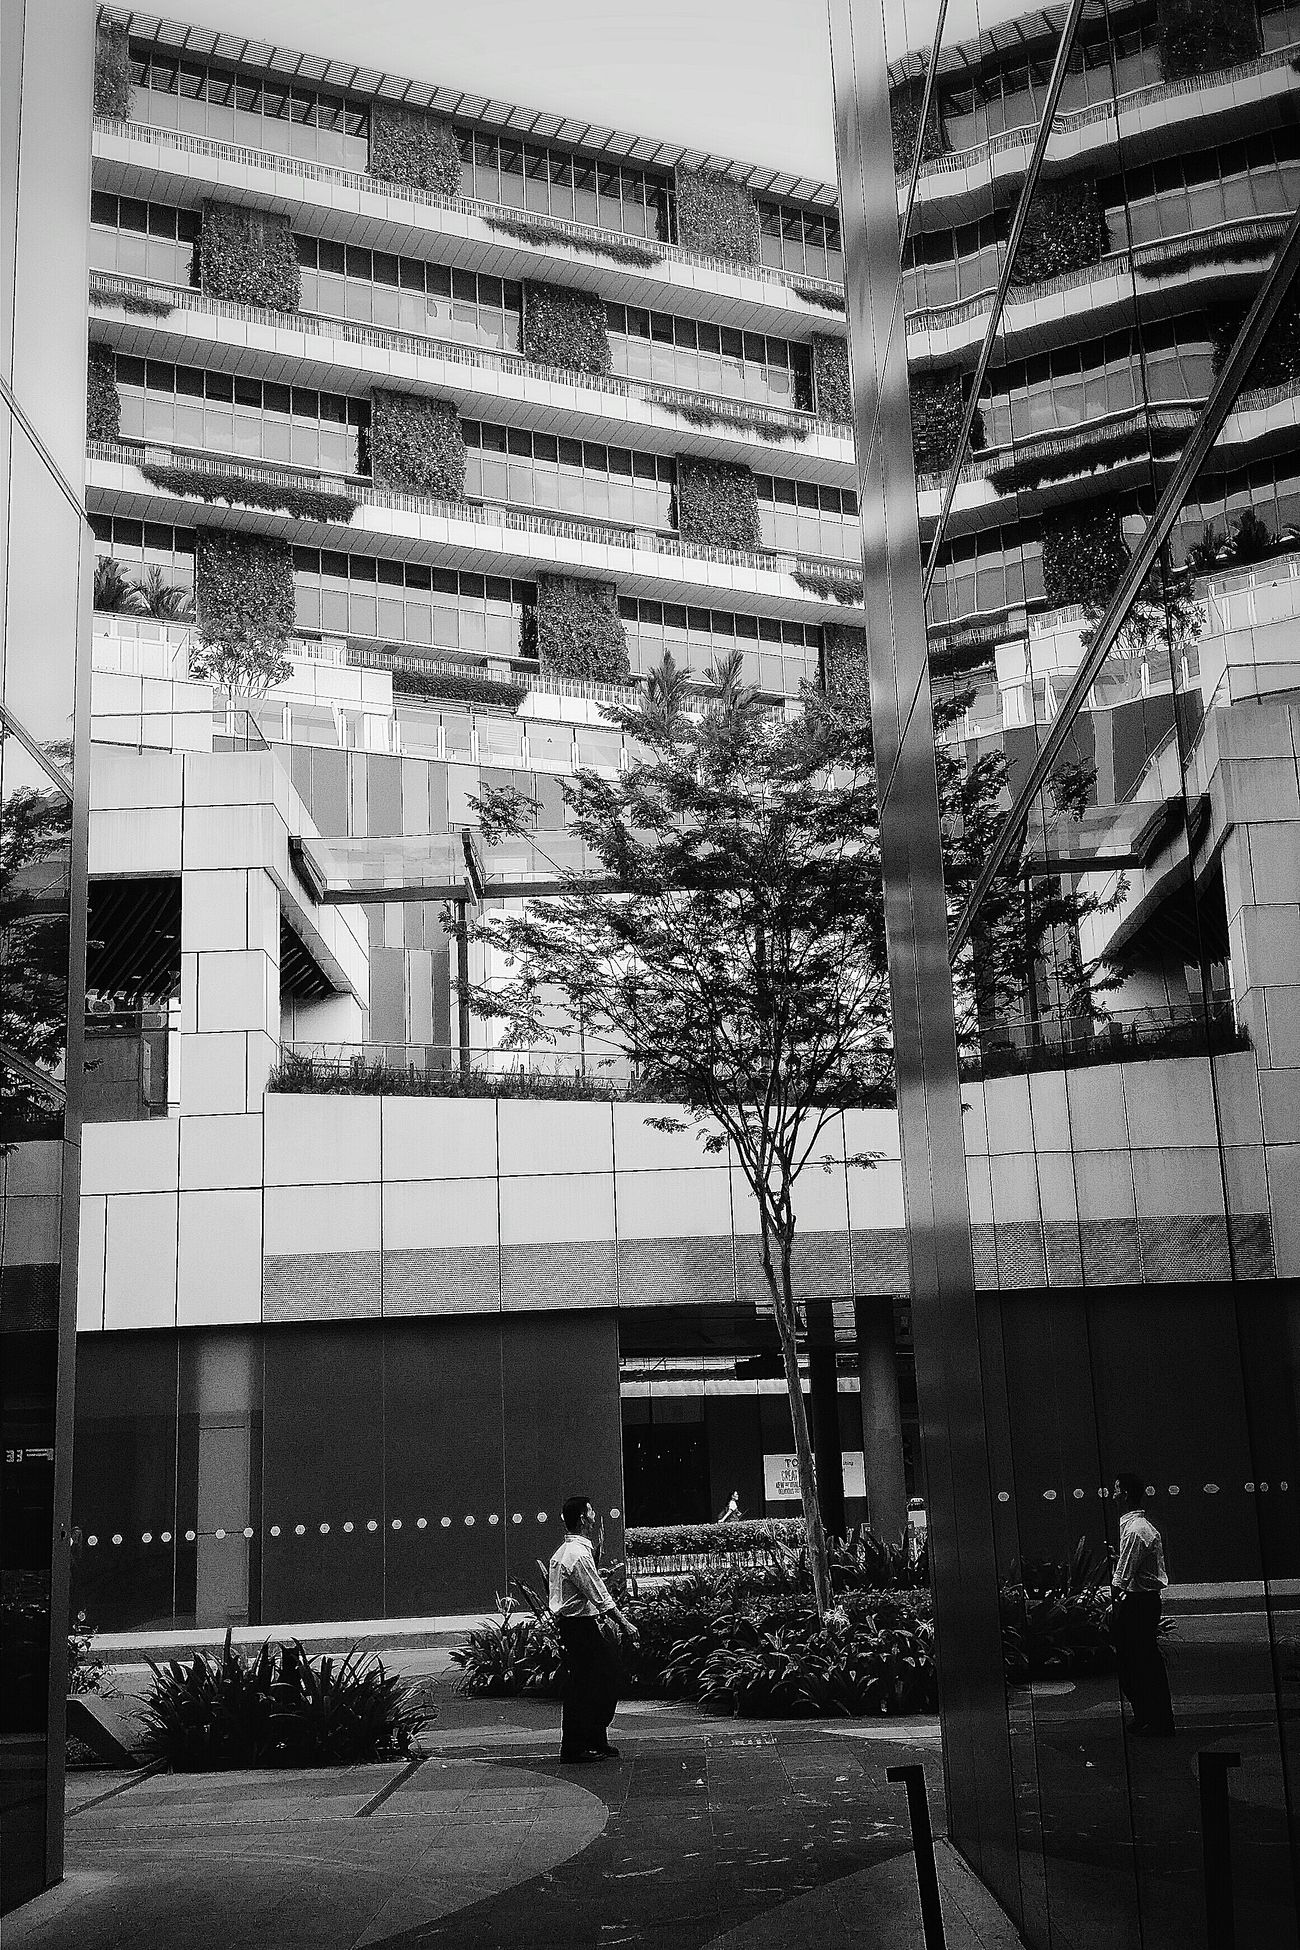 Mall Architecture Reflections Man Tree Streetphotography Bnw Bnw_streetphotography Bnw_photo Bnw_globe Bnw_city Bnw_society Bnw_life Bnwphotography EyeEm Gallery EyeEm Bnw Eyeem Streetphotography Eyemphotography Eyeemcollection EyeEm